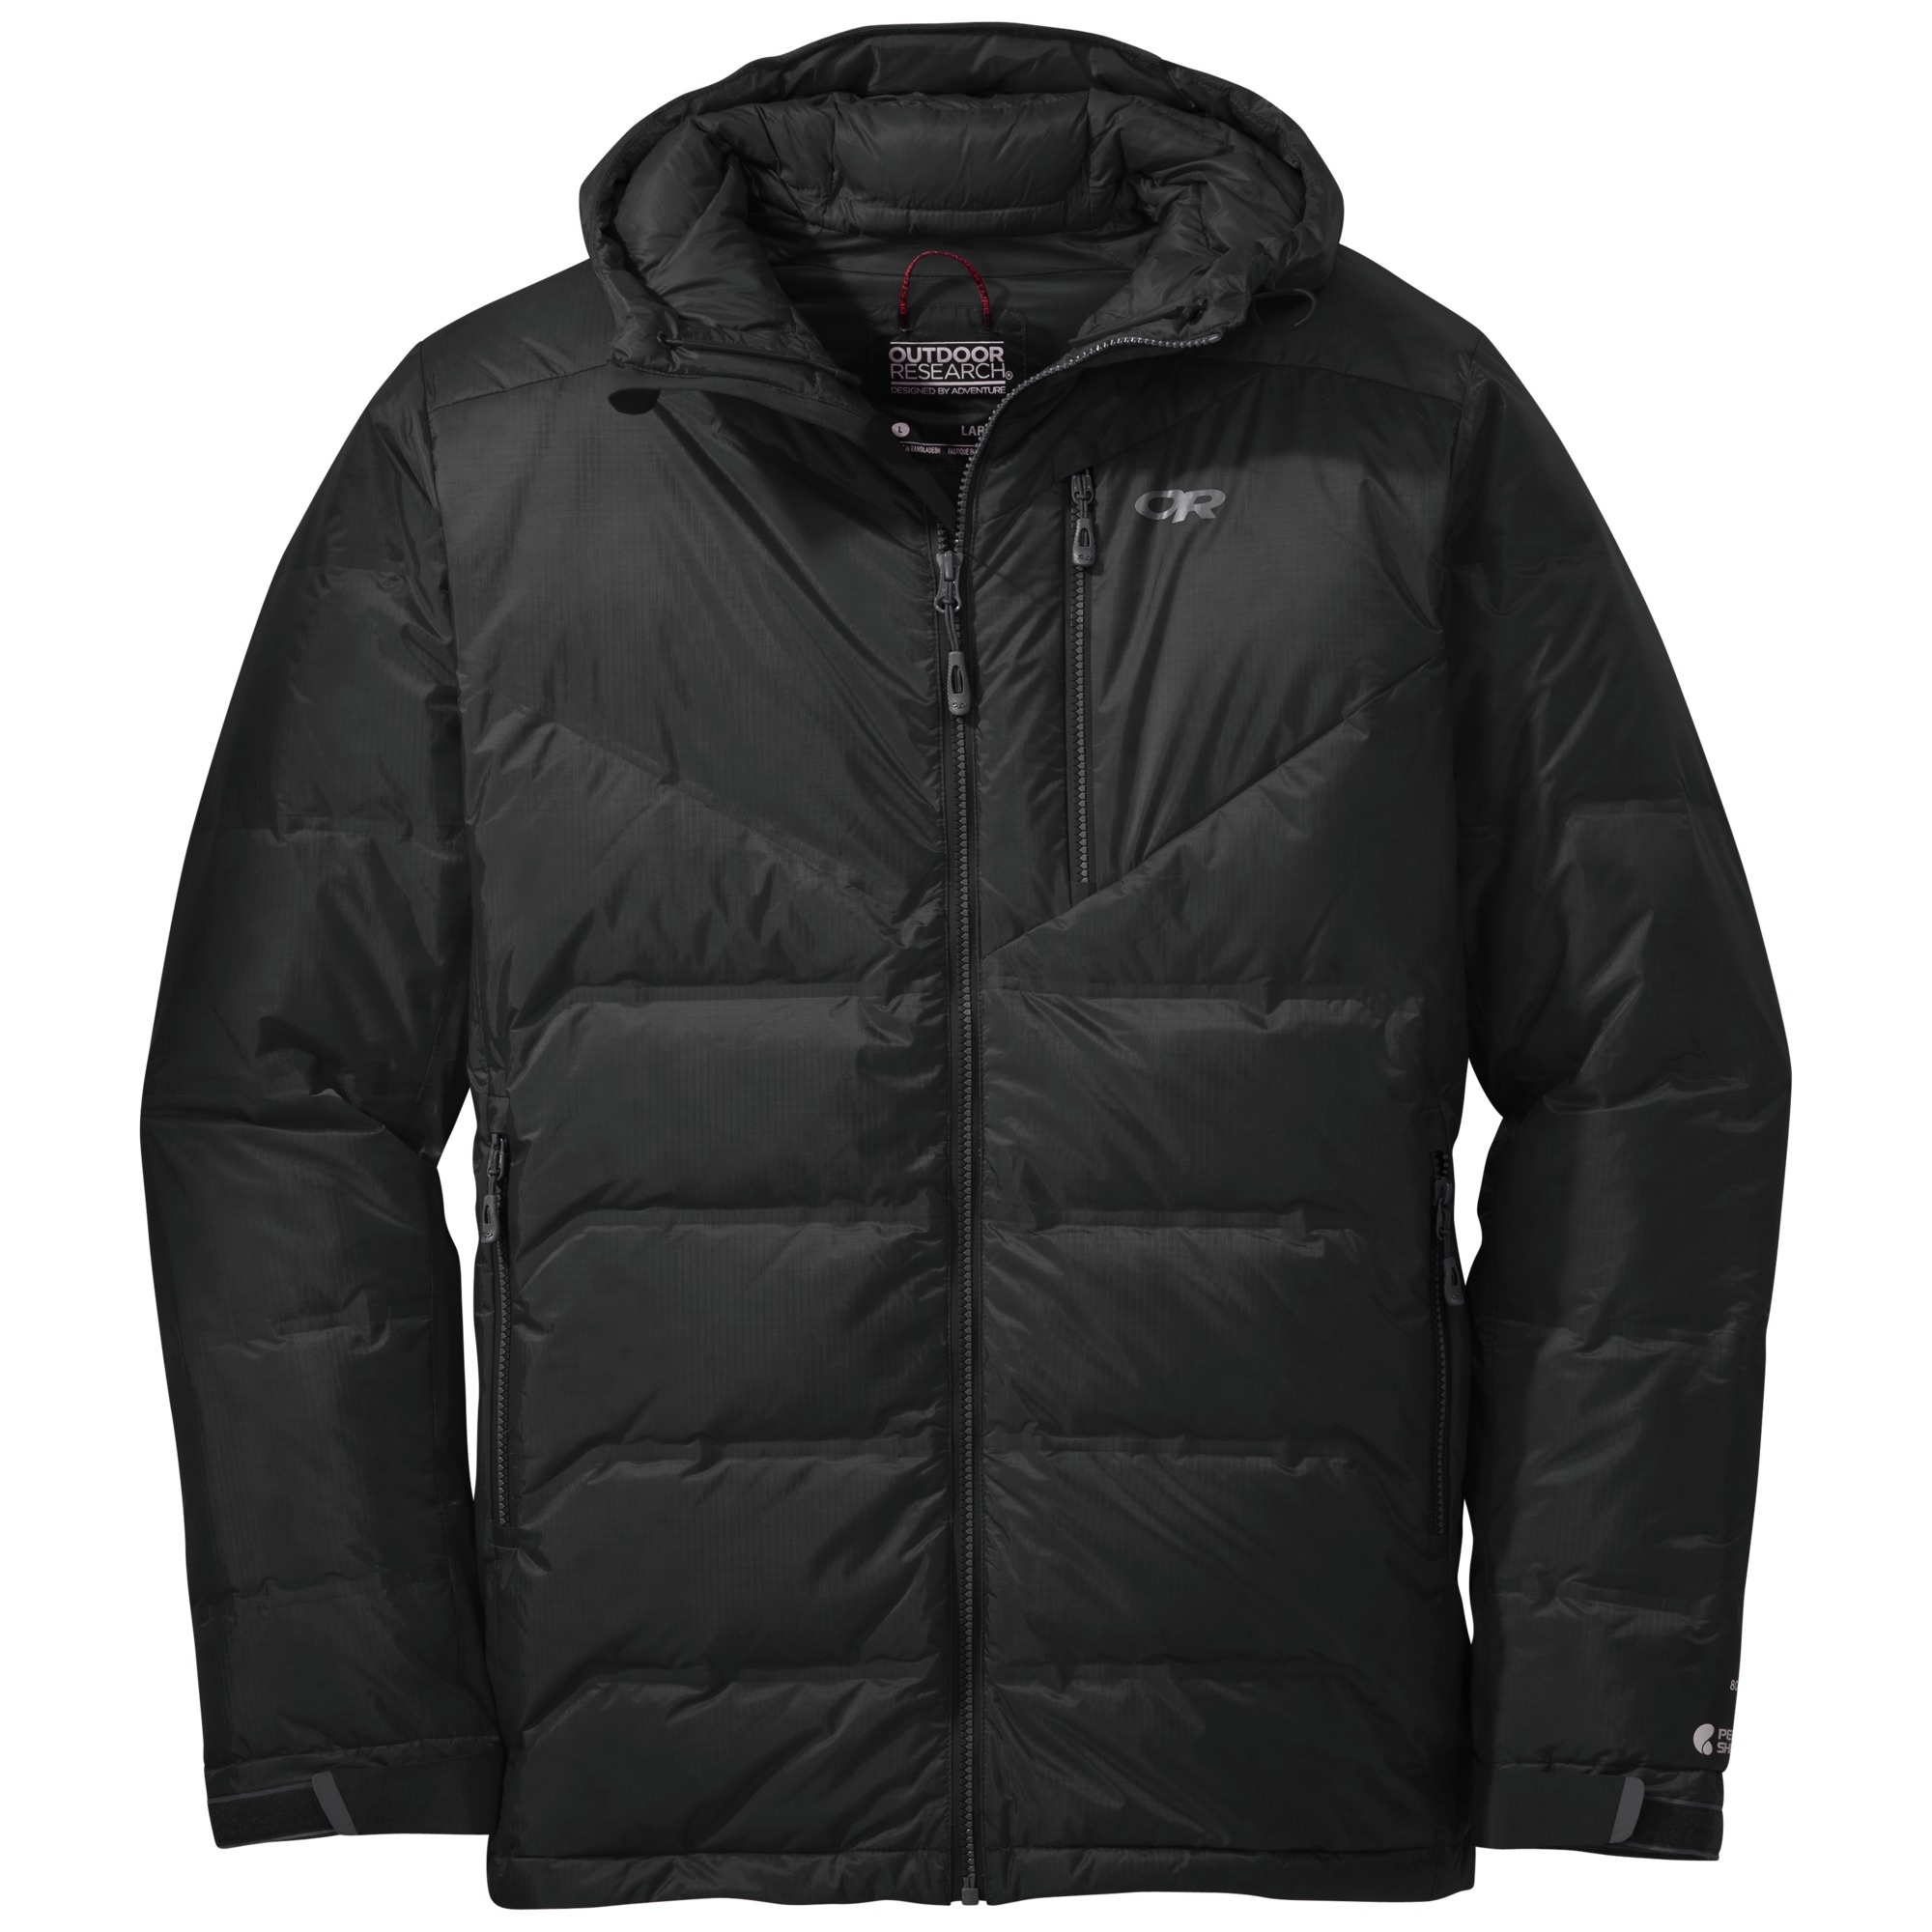 Outdoor Research Men's Floodlight Down Jacket-black-XL - Gr. XL